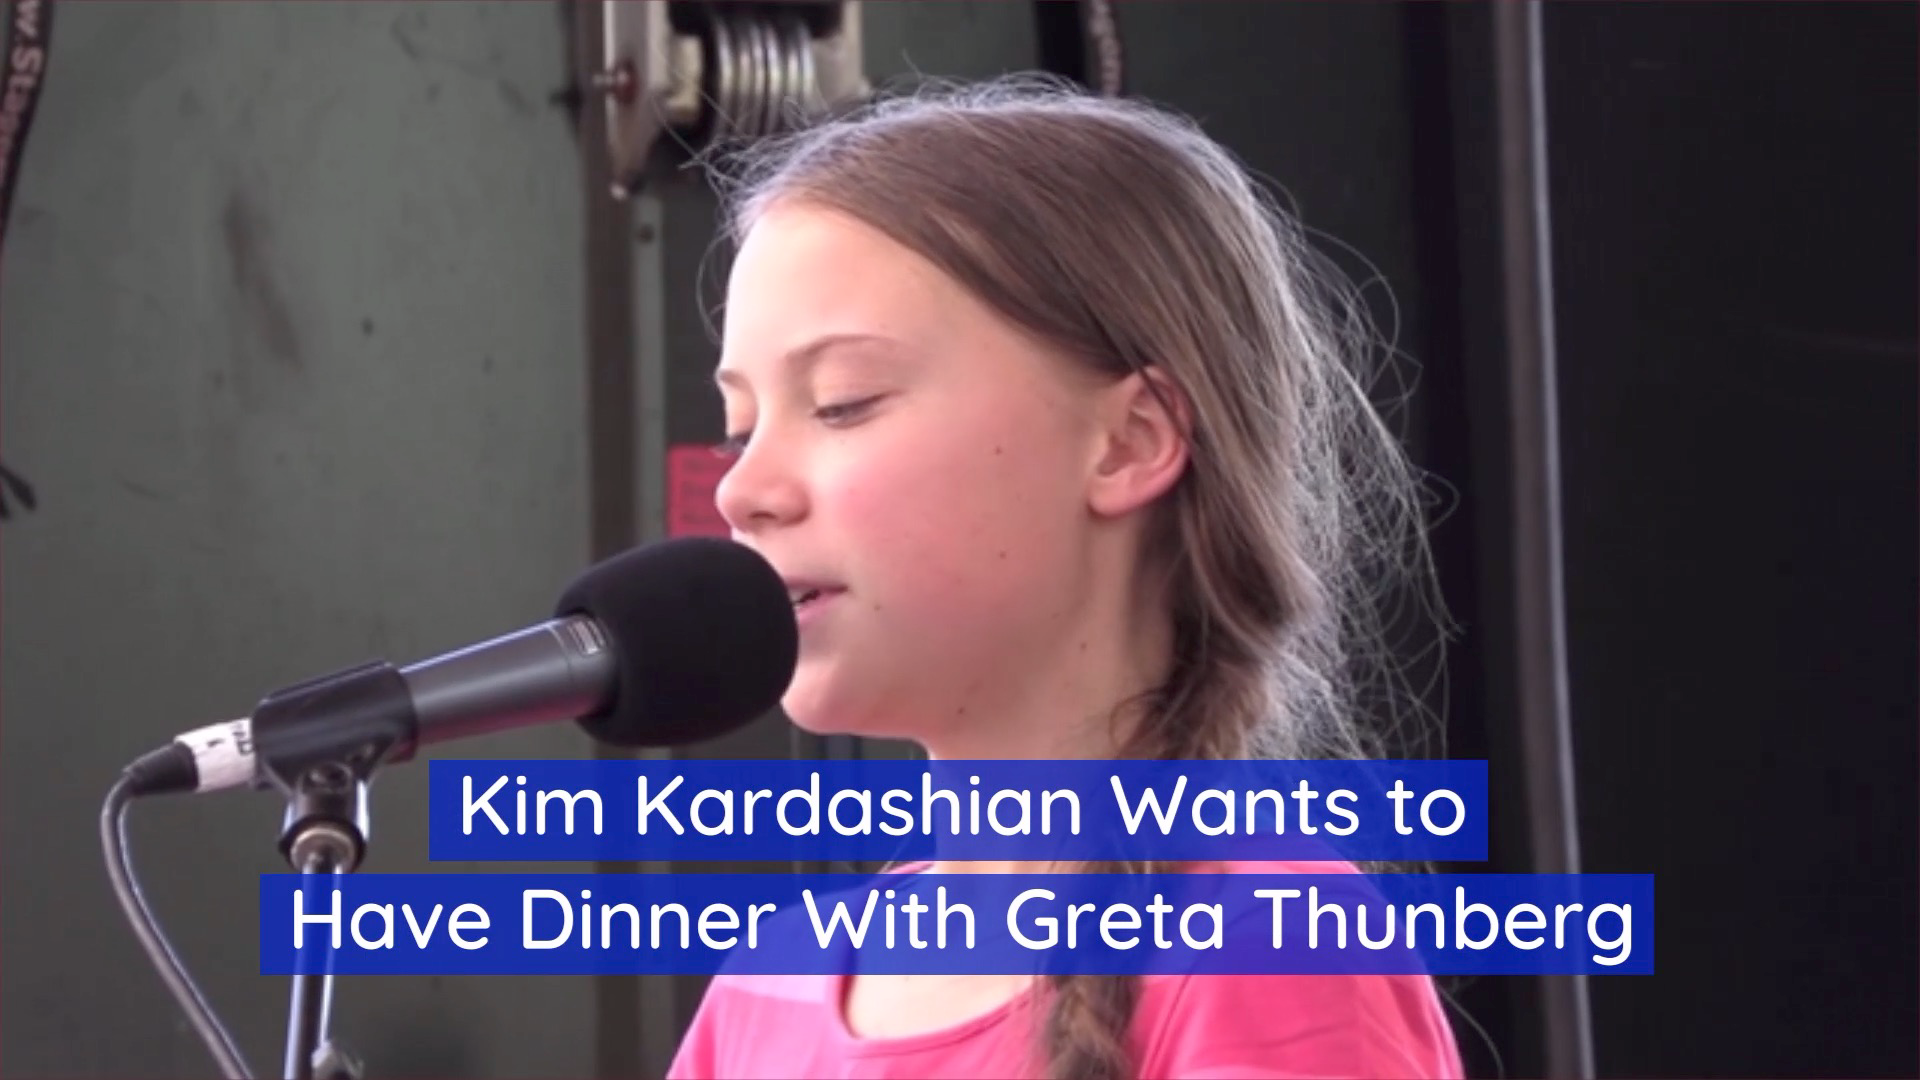 A Dinner With Greta Thunberg And Kim Kardashian